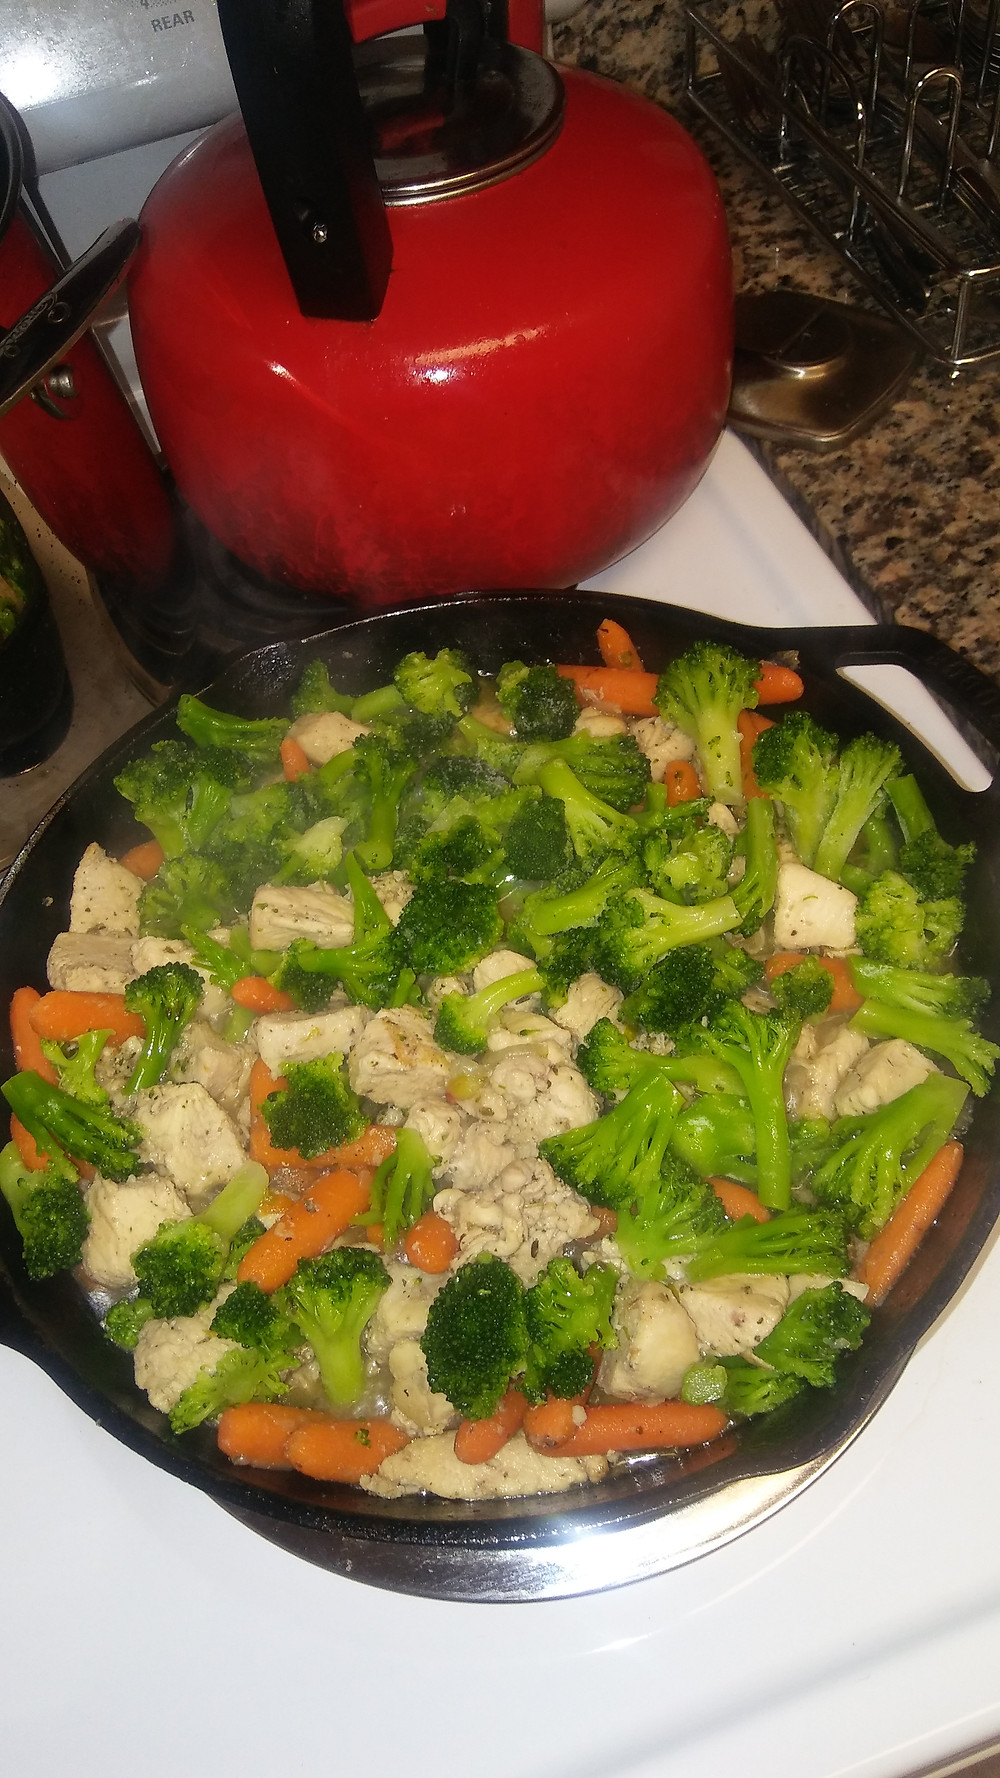 Chicken and vegetable stir fry with carrots, broccoli, and herbs